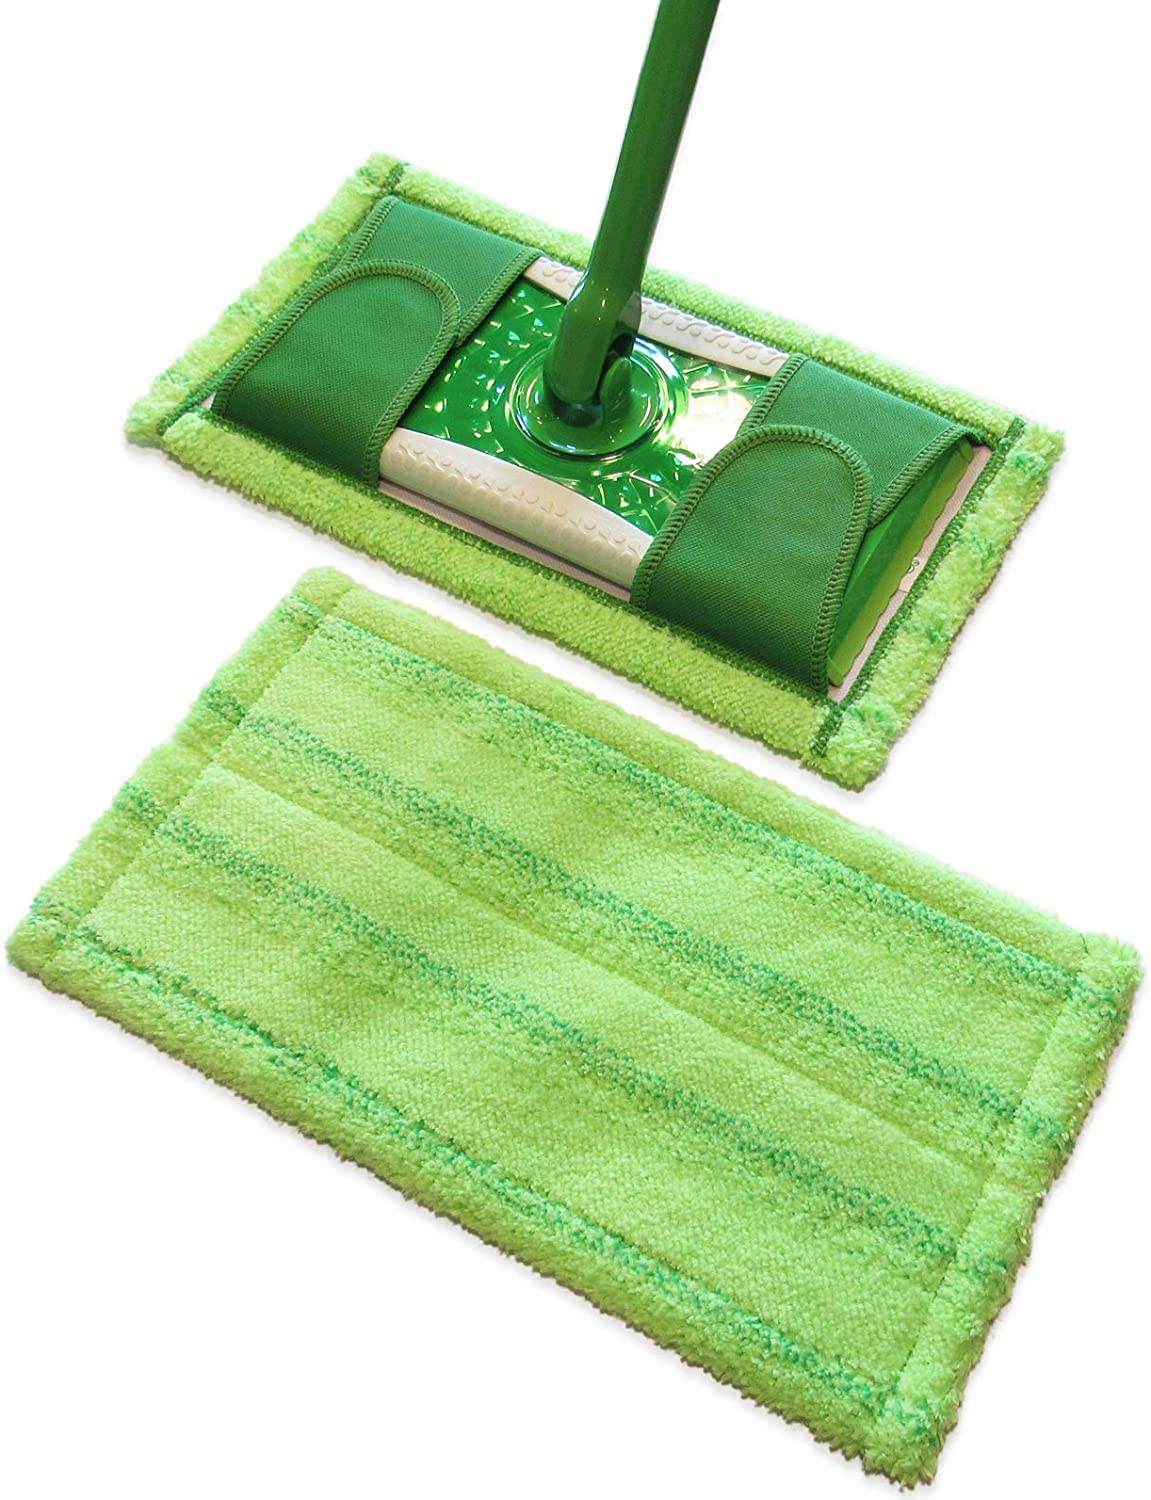 Swiffer Sweeper Compatible, Microfiber Mop Pads by Easily Greener, Reusable Refills for Wet & Dry Use, 2 Count